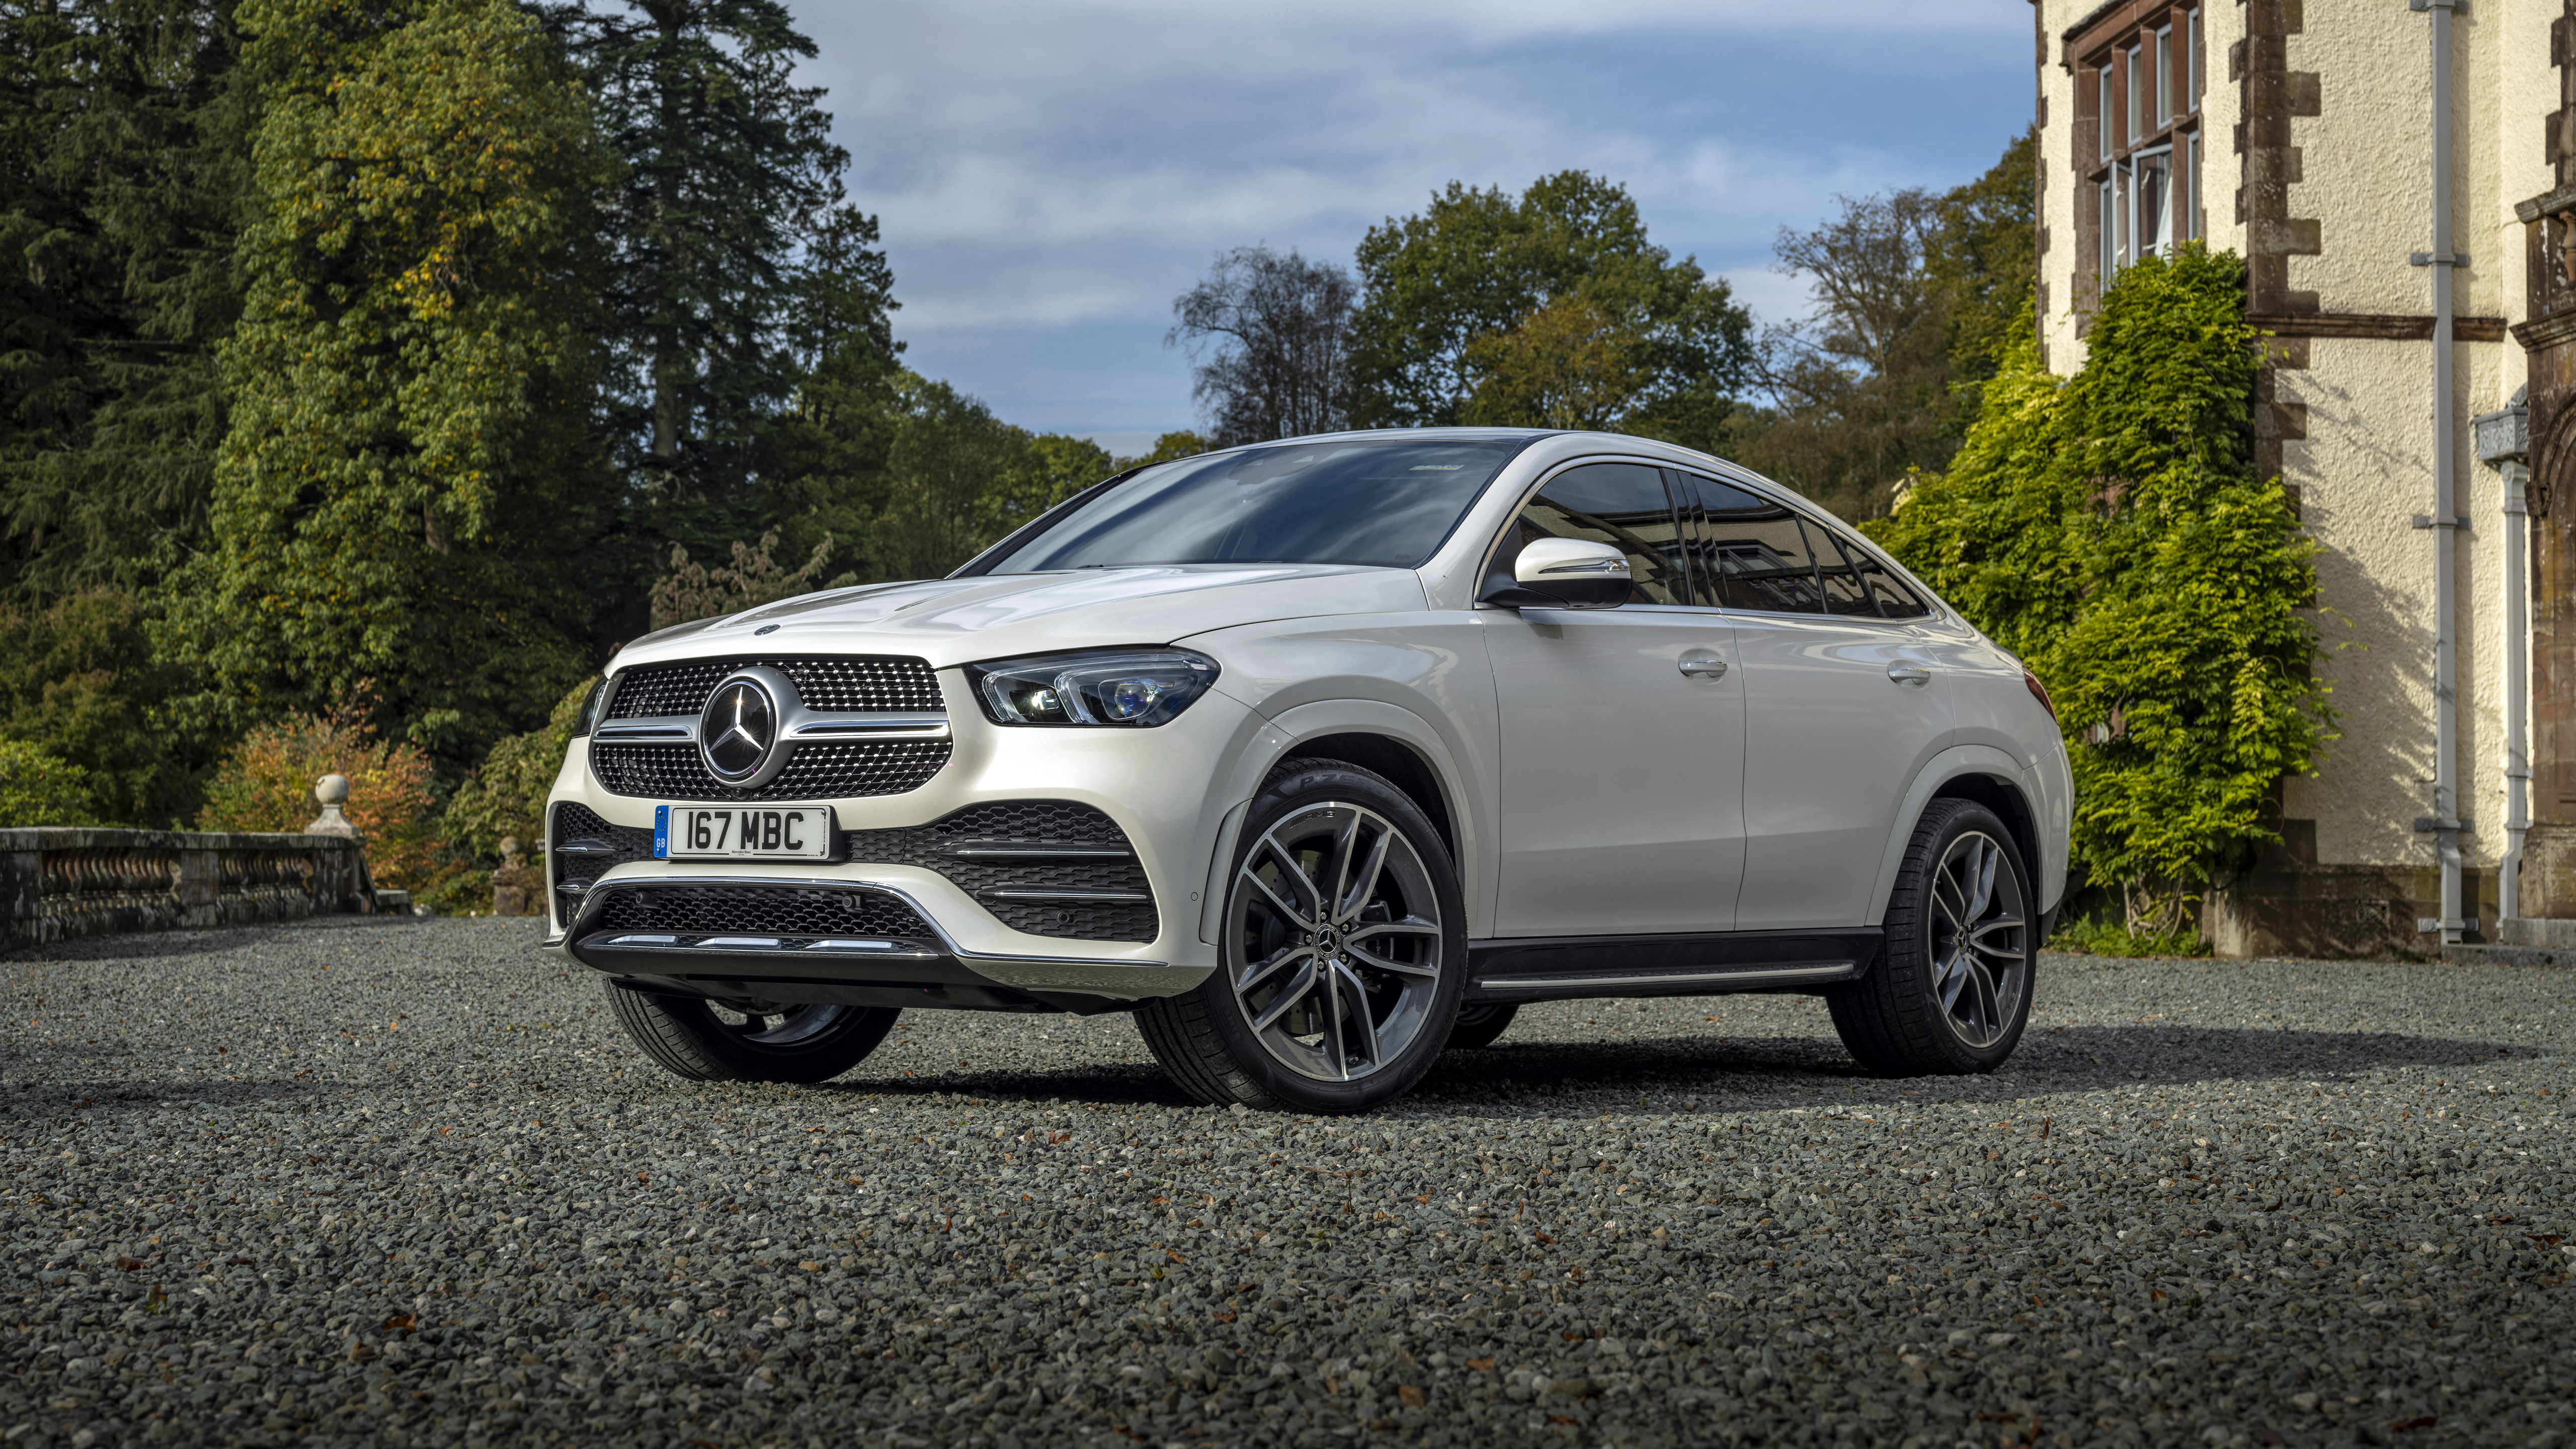 Mercedes Benz Gle 400 D 4matic Amg Line Coupe 2020 4k Wallpaper Hd Car Wallpapers Id 16069